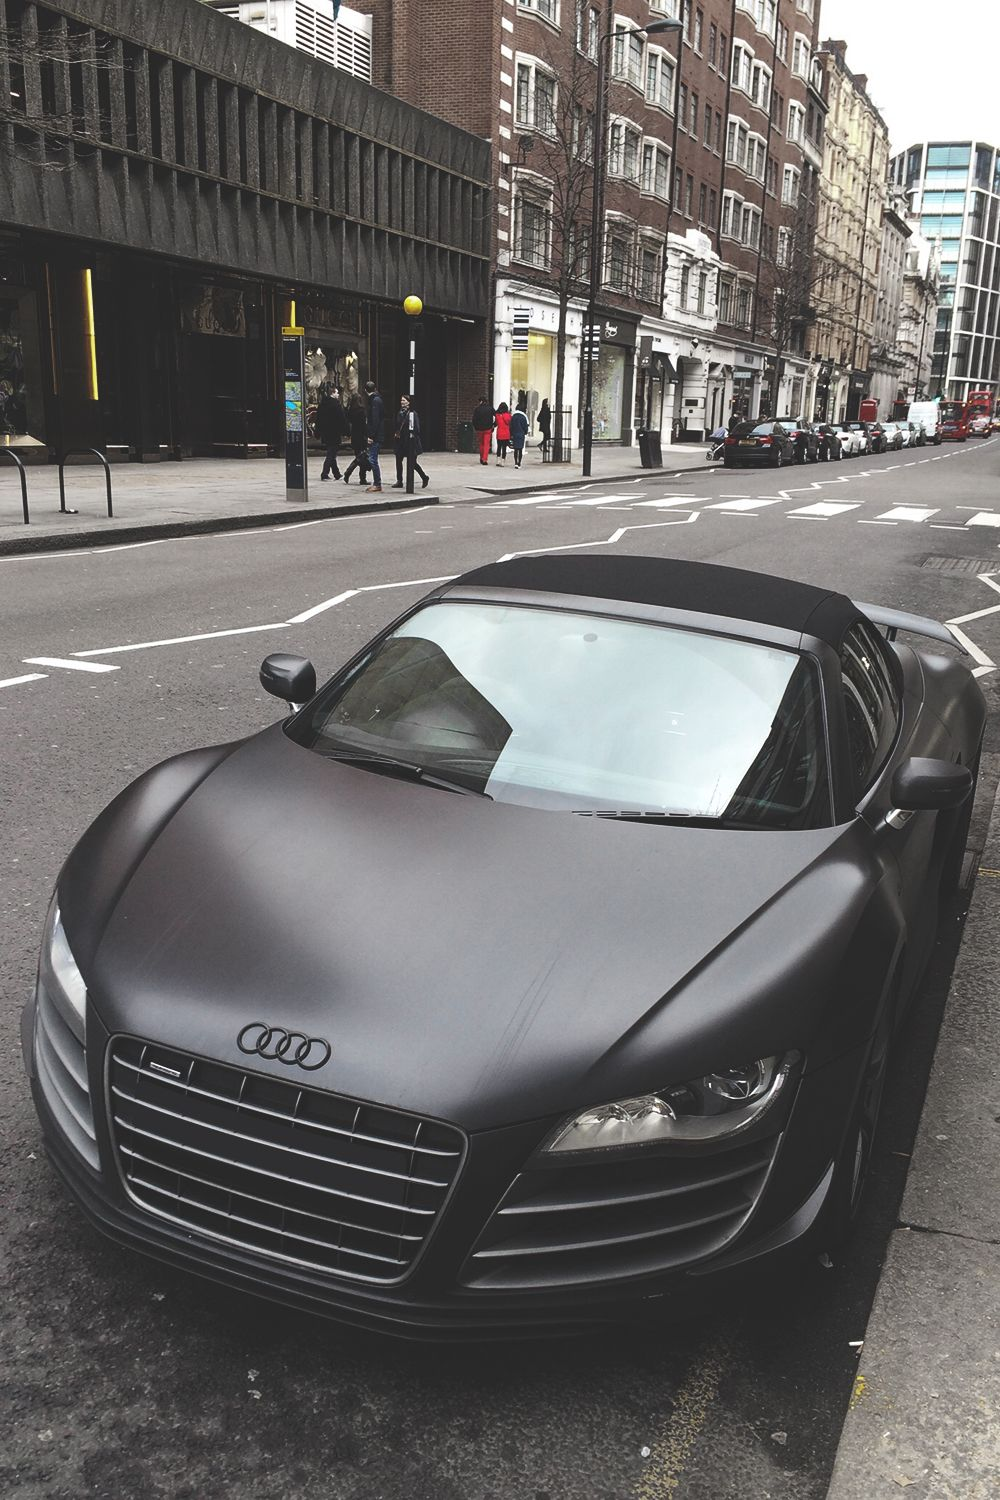 Audi i have a weakness for matte black paint jobs